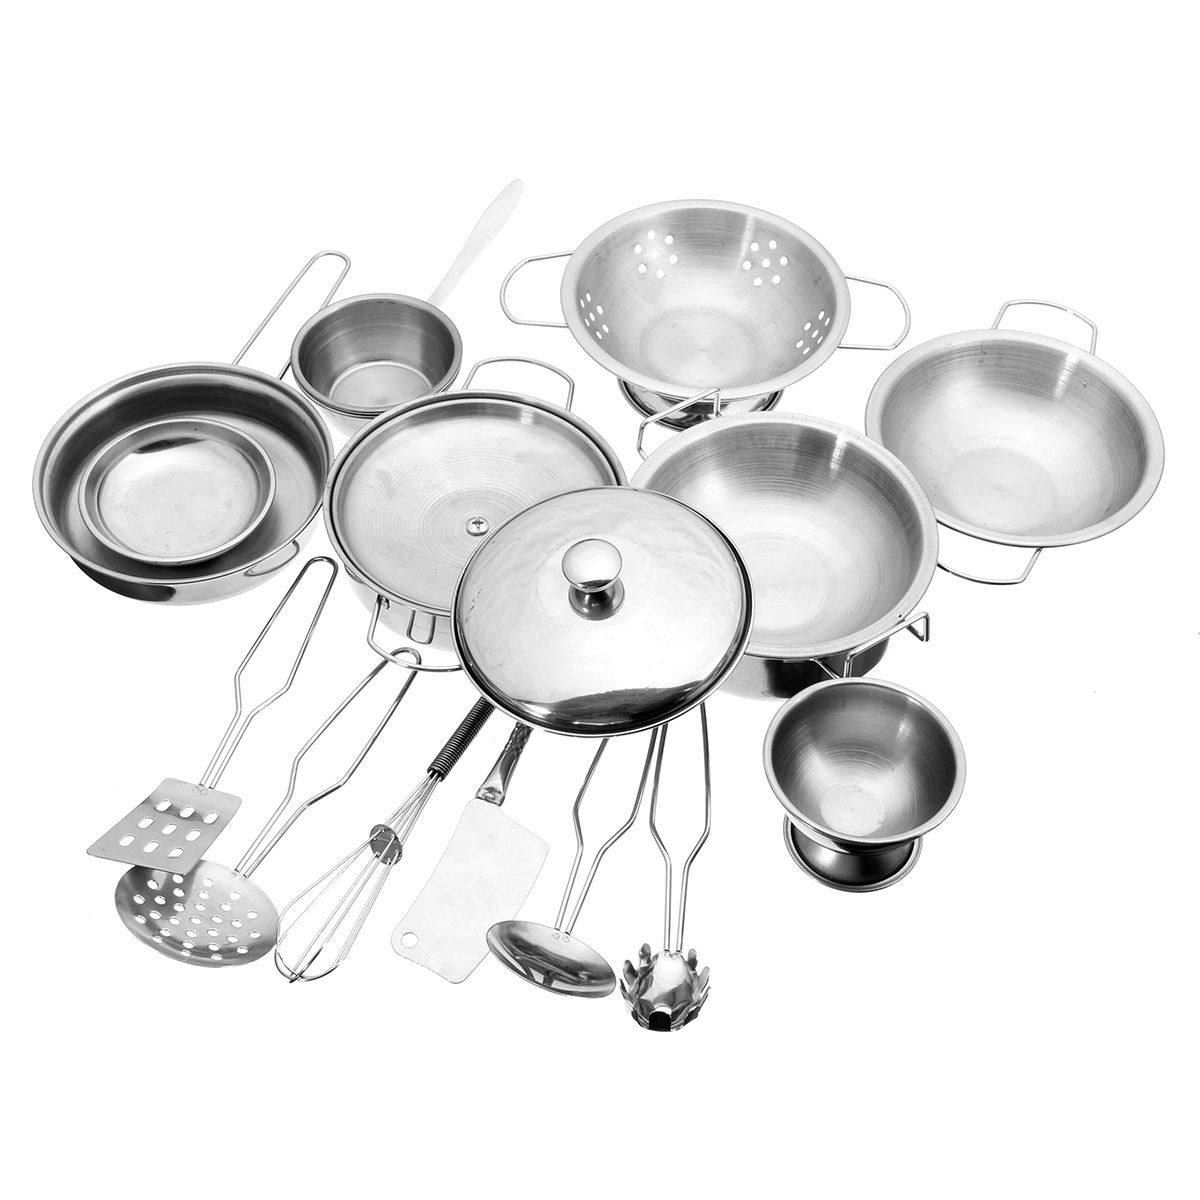 16pcs Stainless Steel Kitchen Cooking Utensils Pots Pans Food Gift Miniature Kitchen Cook Tools Simulation Play House Toys